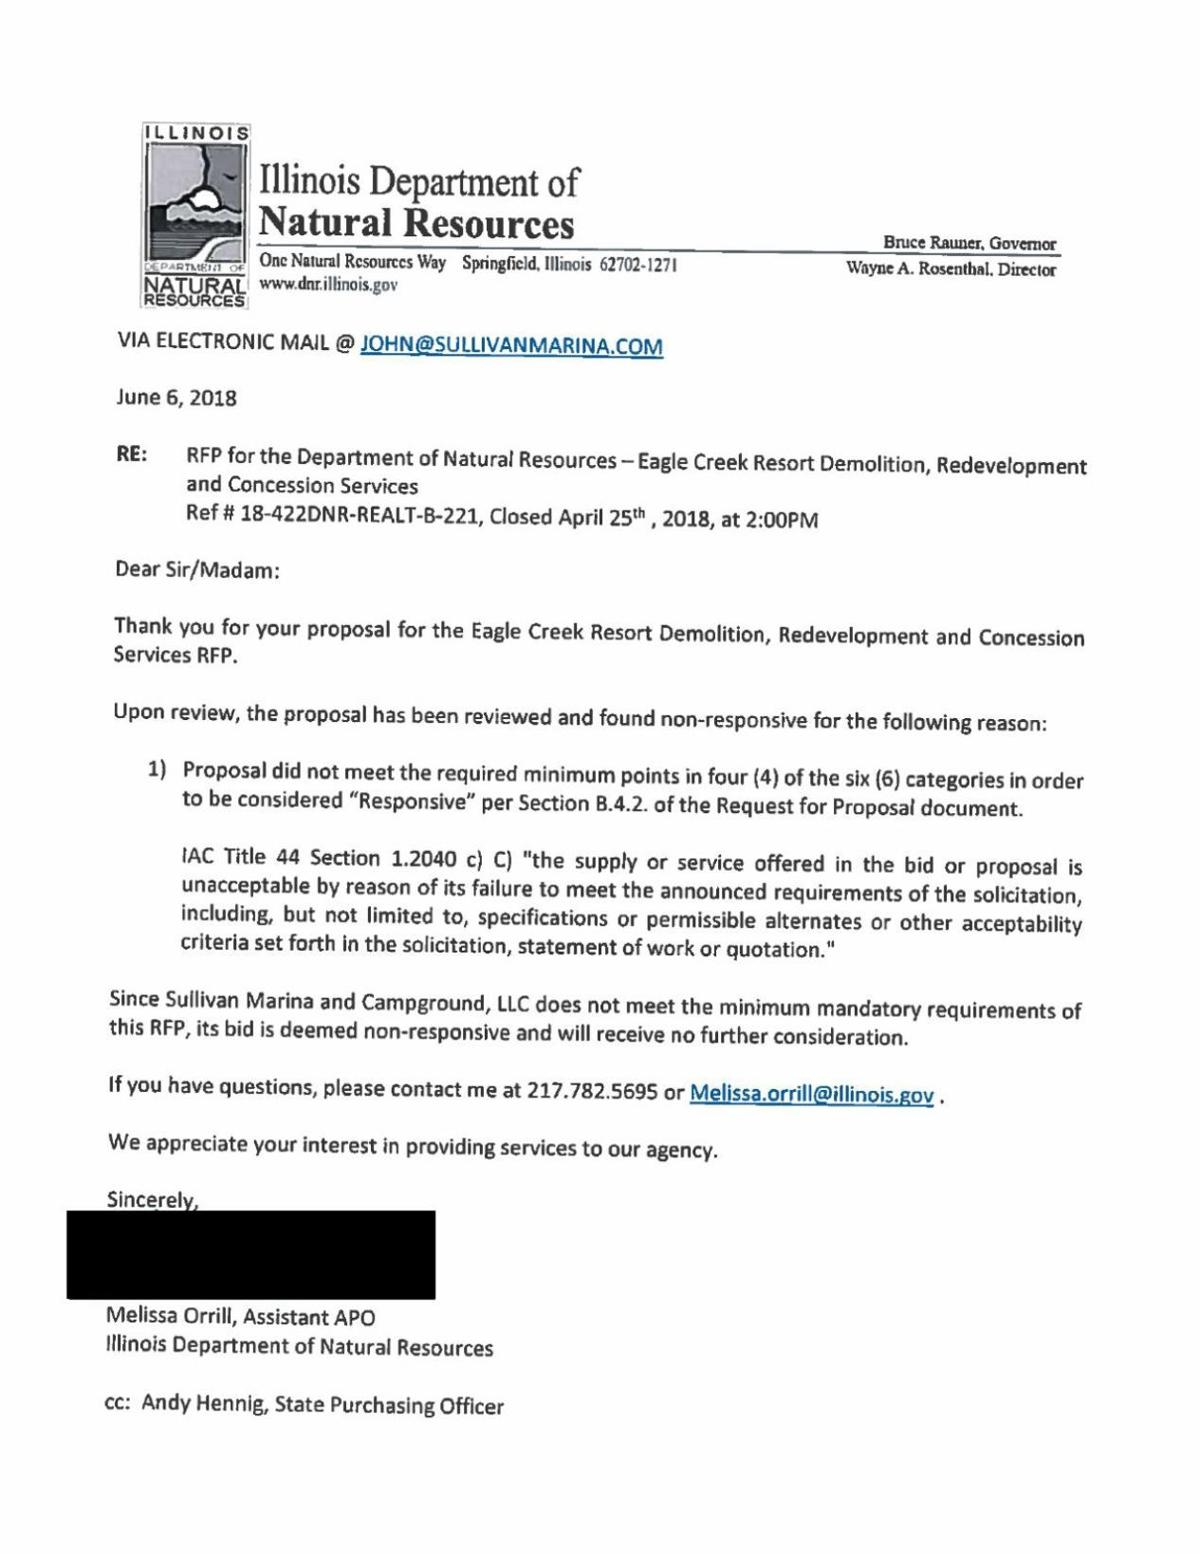 Eagle Creek Proposal Rejection Letter